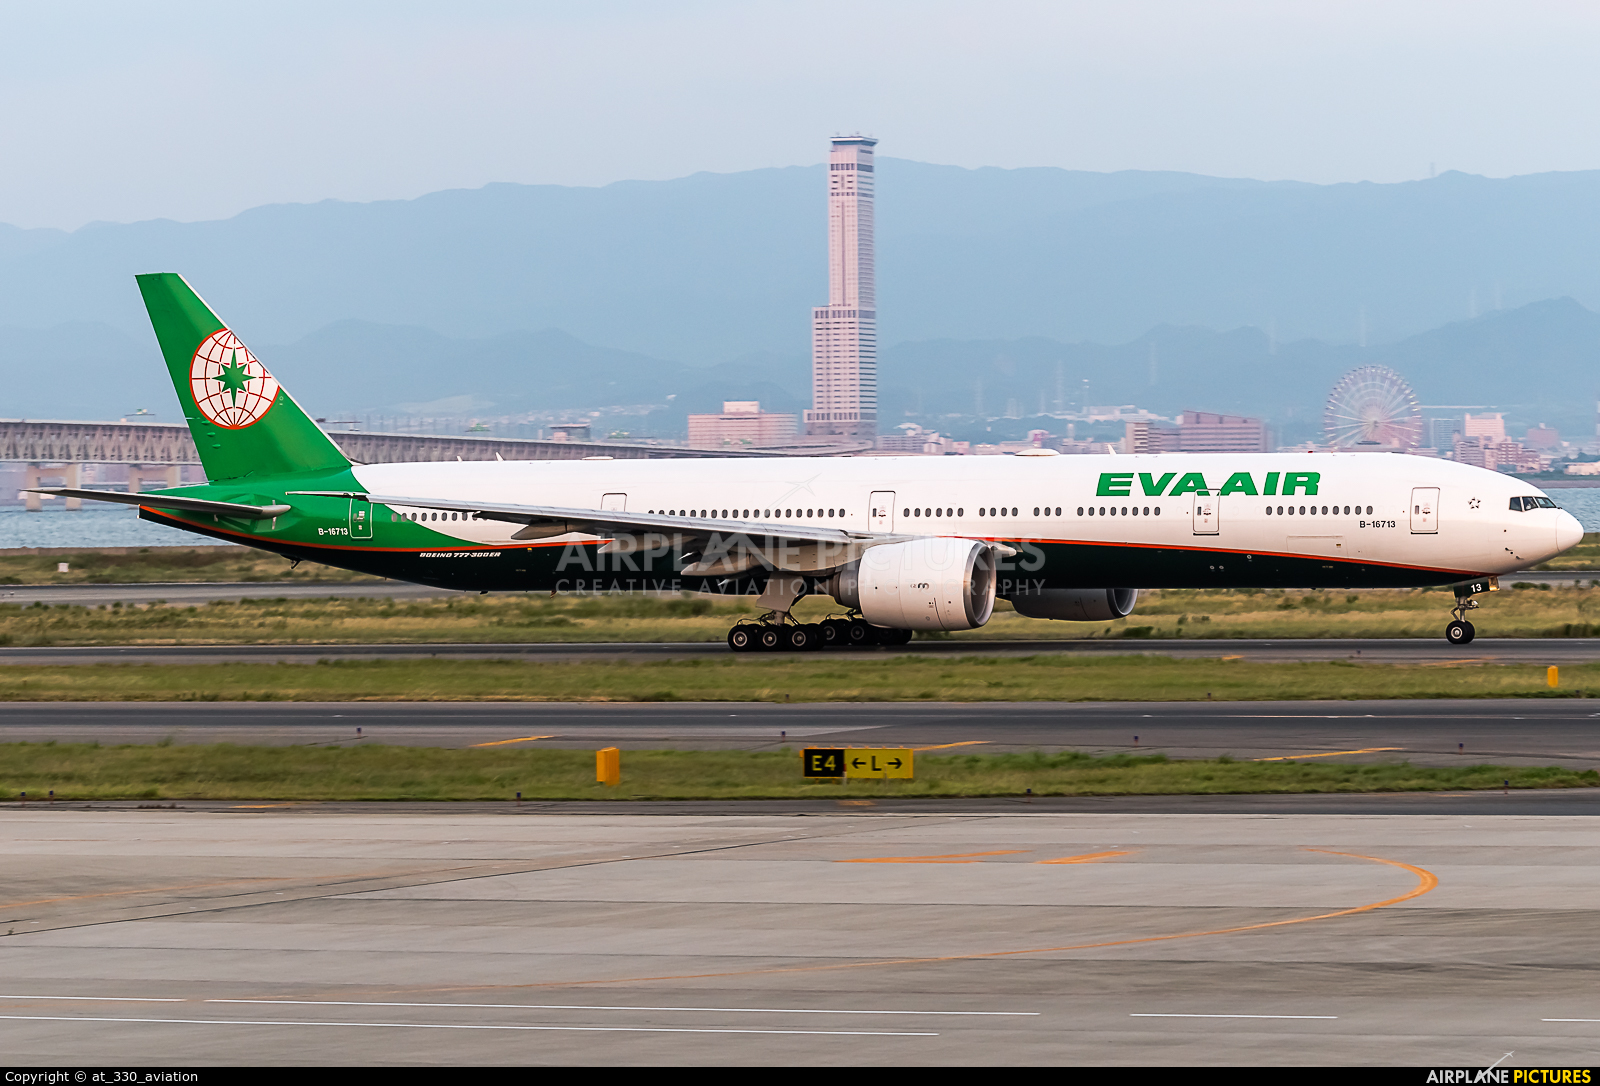 Eva Air B-16713 aircraft at Kansai Intl